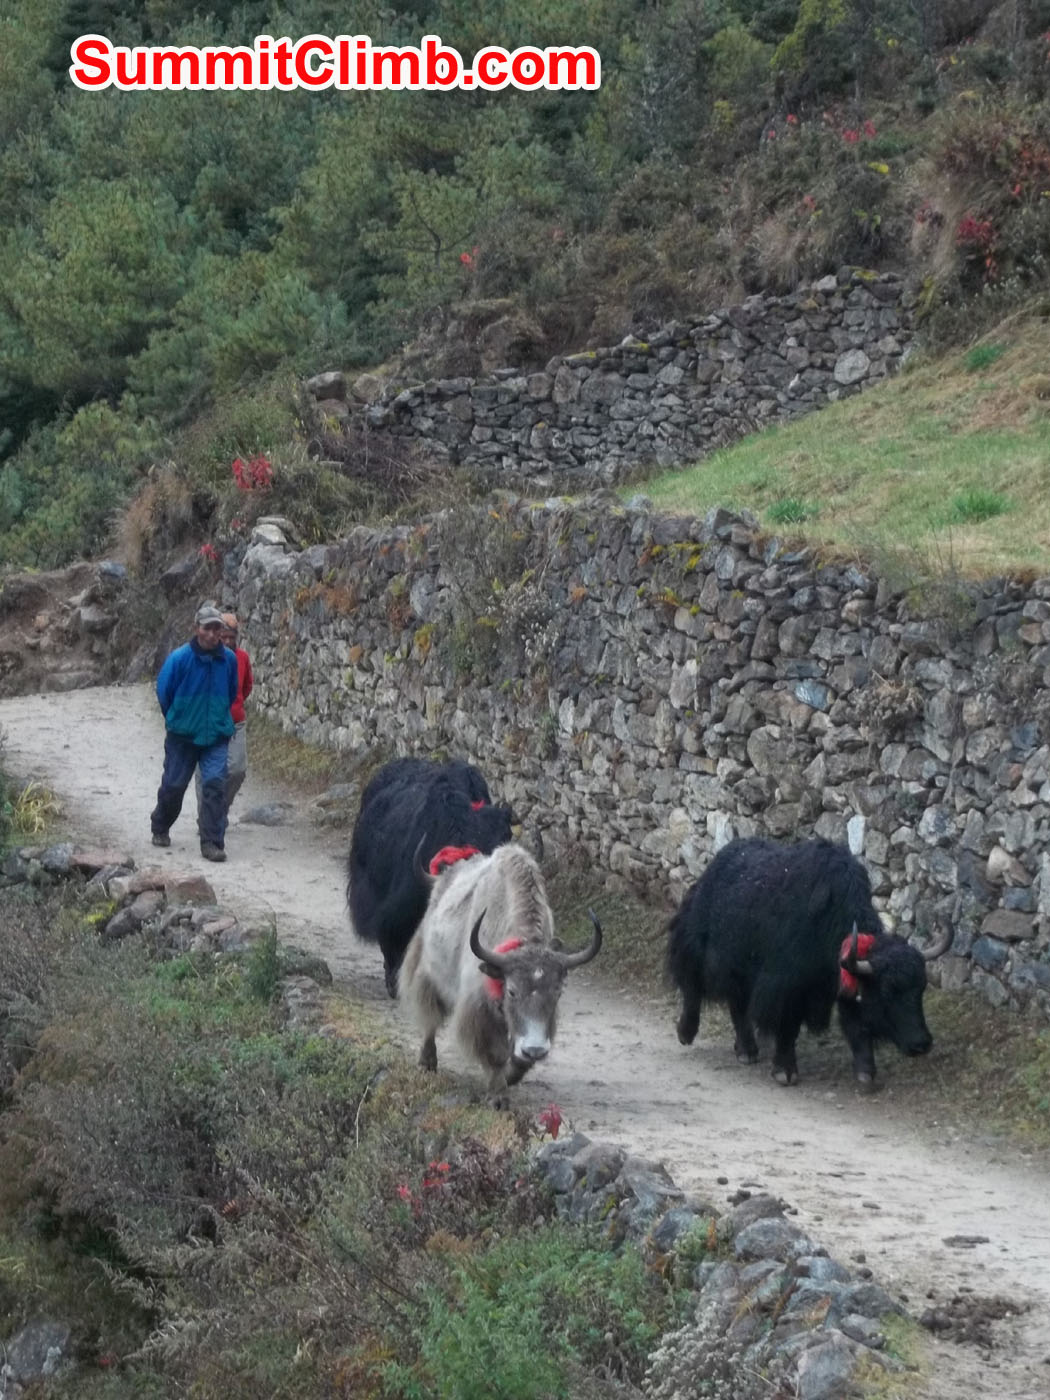 Yak drivers with Yaks